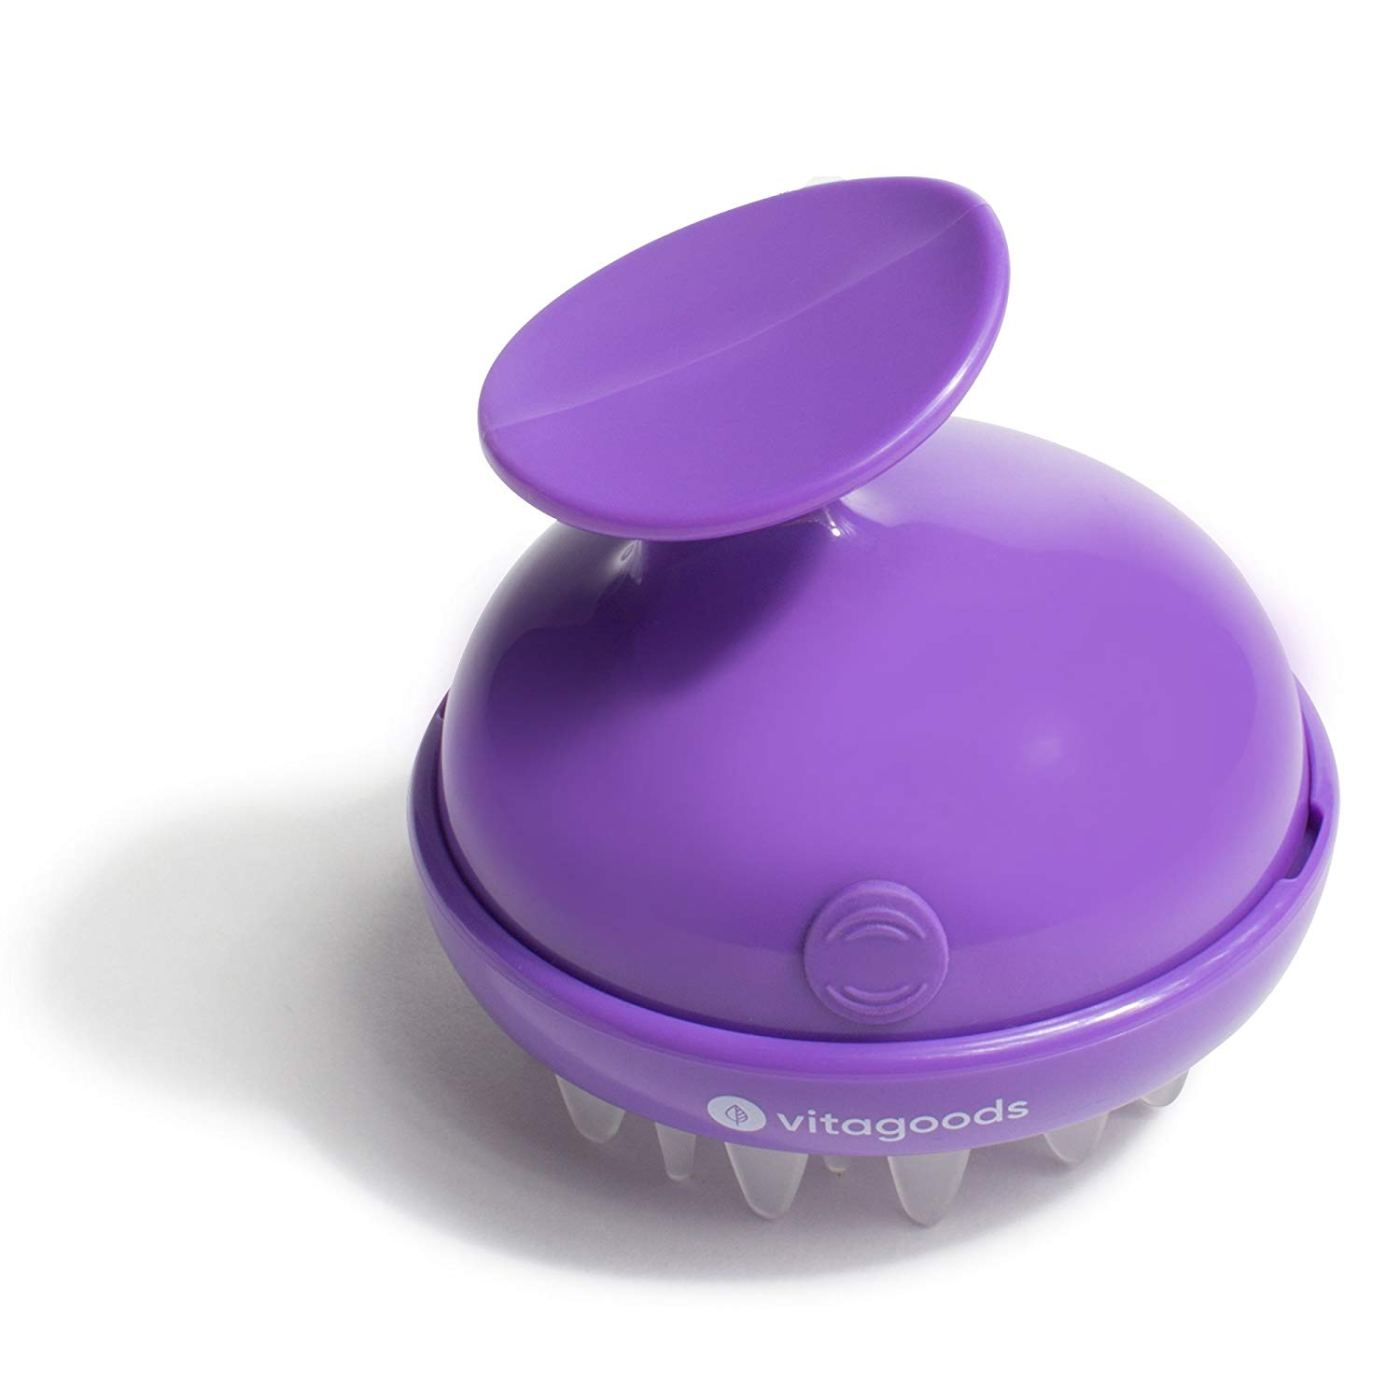 Image result for Vitagoods Scalp Massaging Shampoo Brush - Handheld Vibrating Massager, Water-Resistant Device - Purple